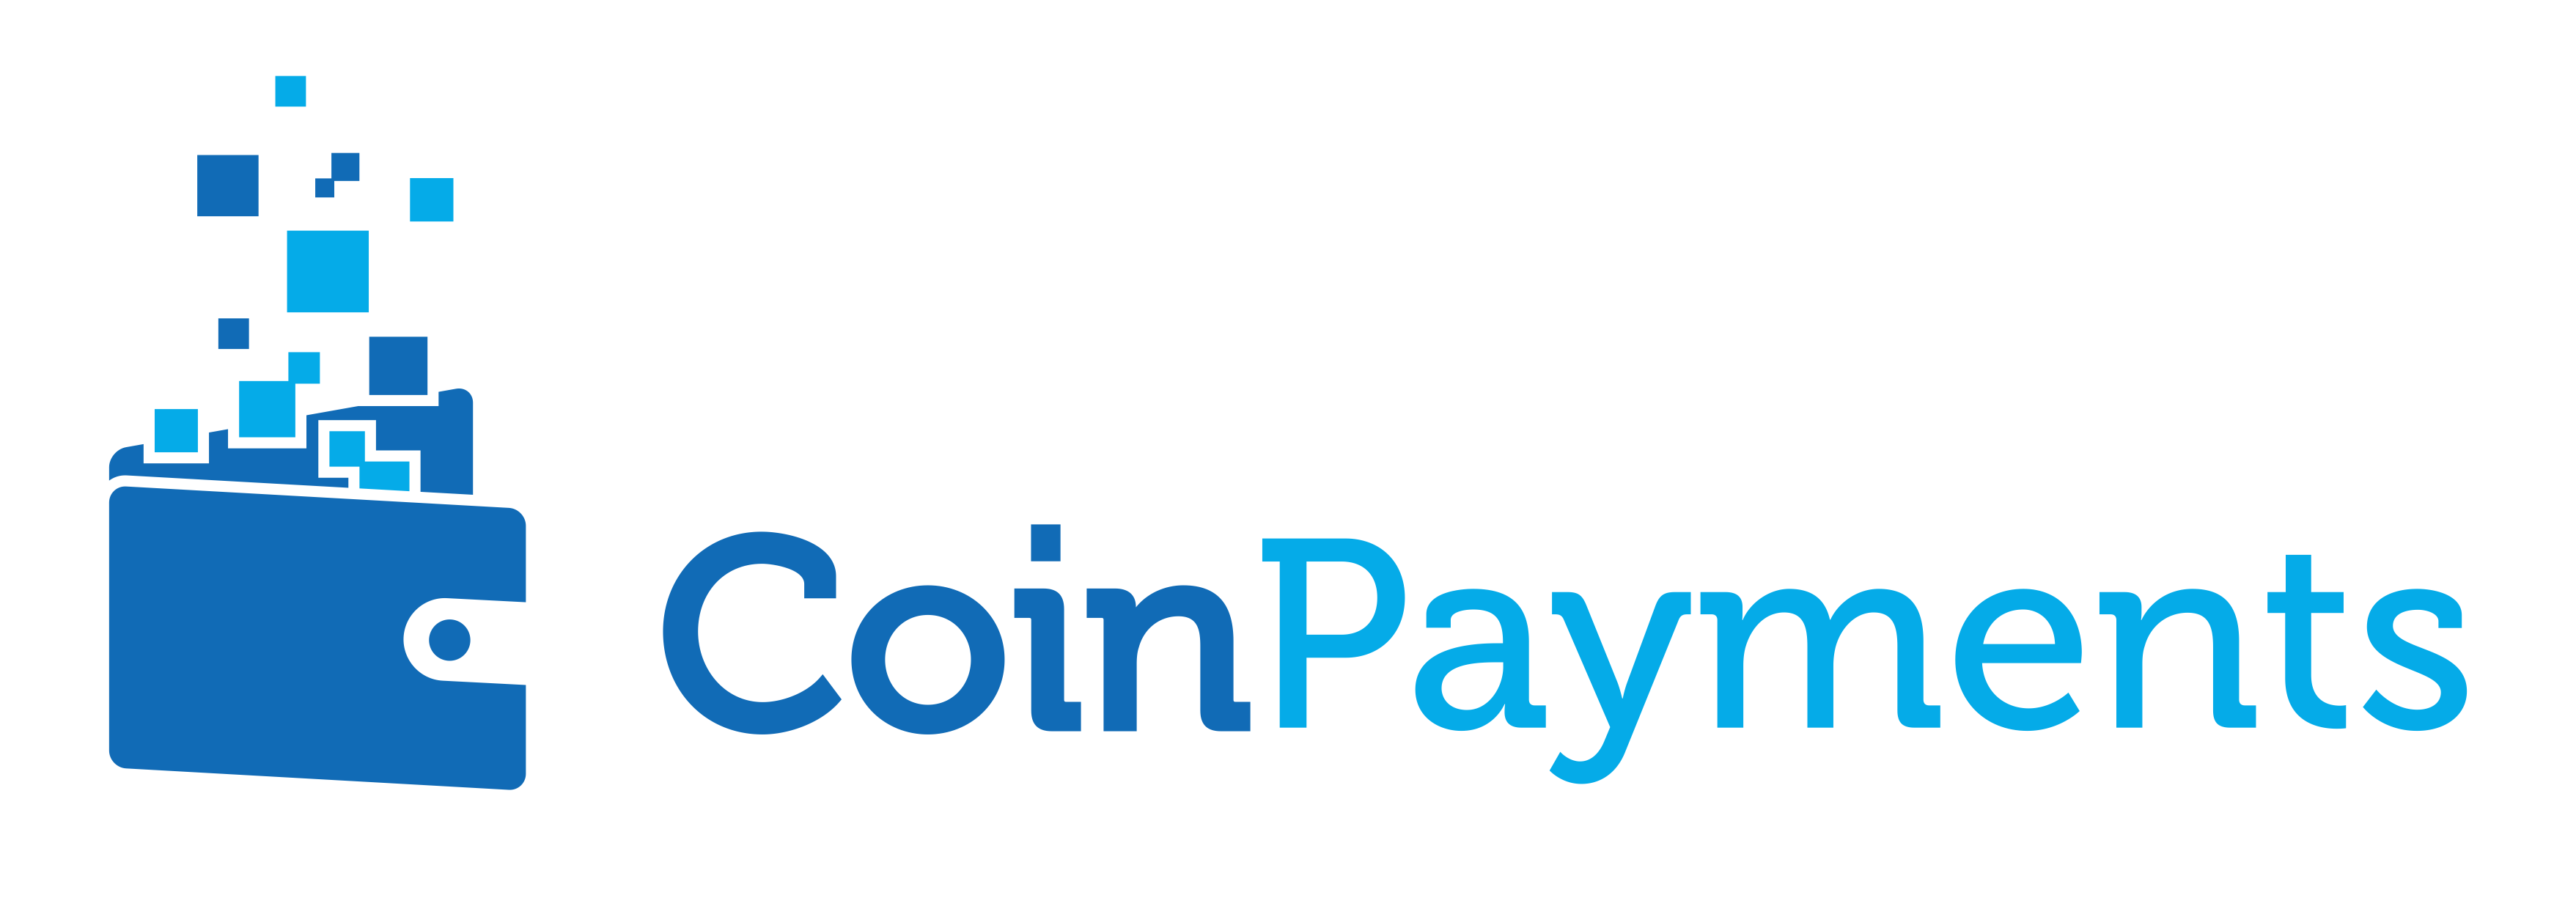 Coinpayments live on BnkToTheFuture for qualifying investors